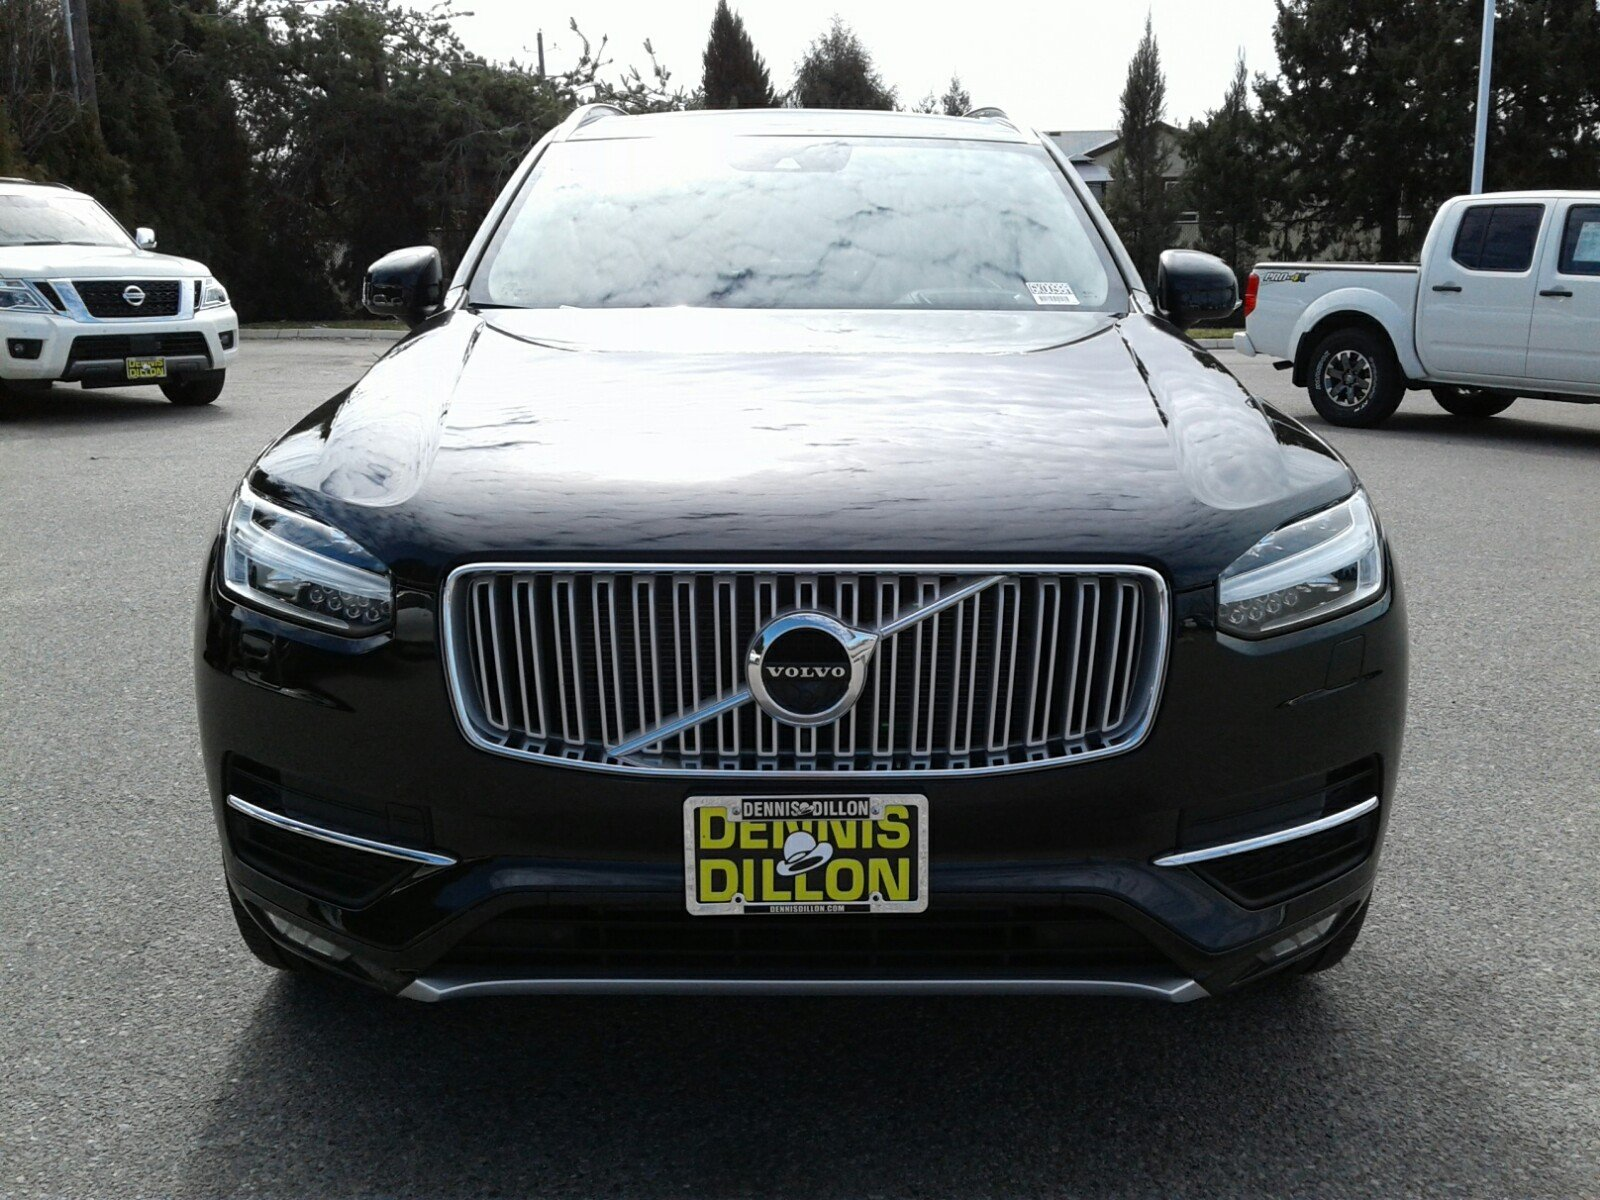 2019 Volvo Xc90 Price Best Of Pre Owned 2019 Volvo Xc90 Inscription with Navigation & Awd